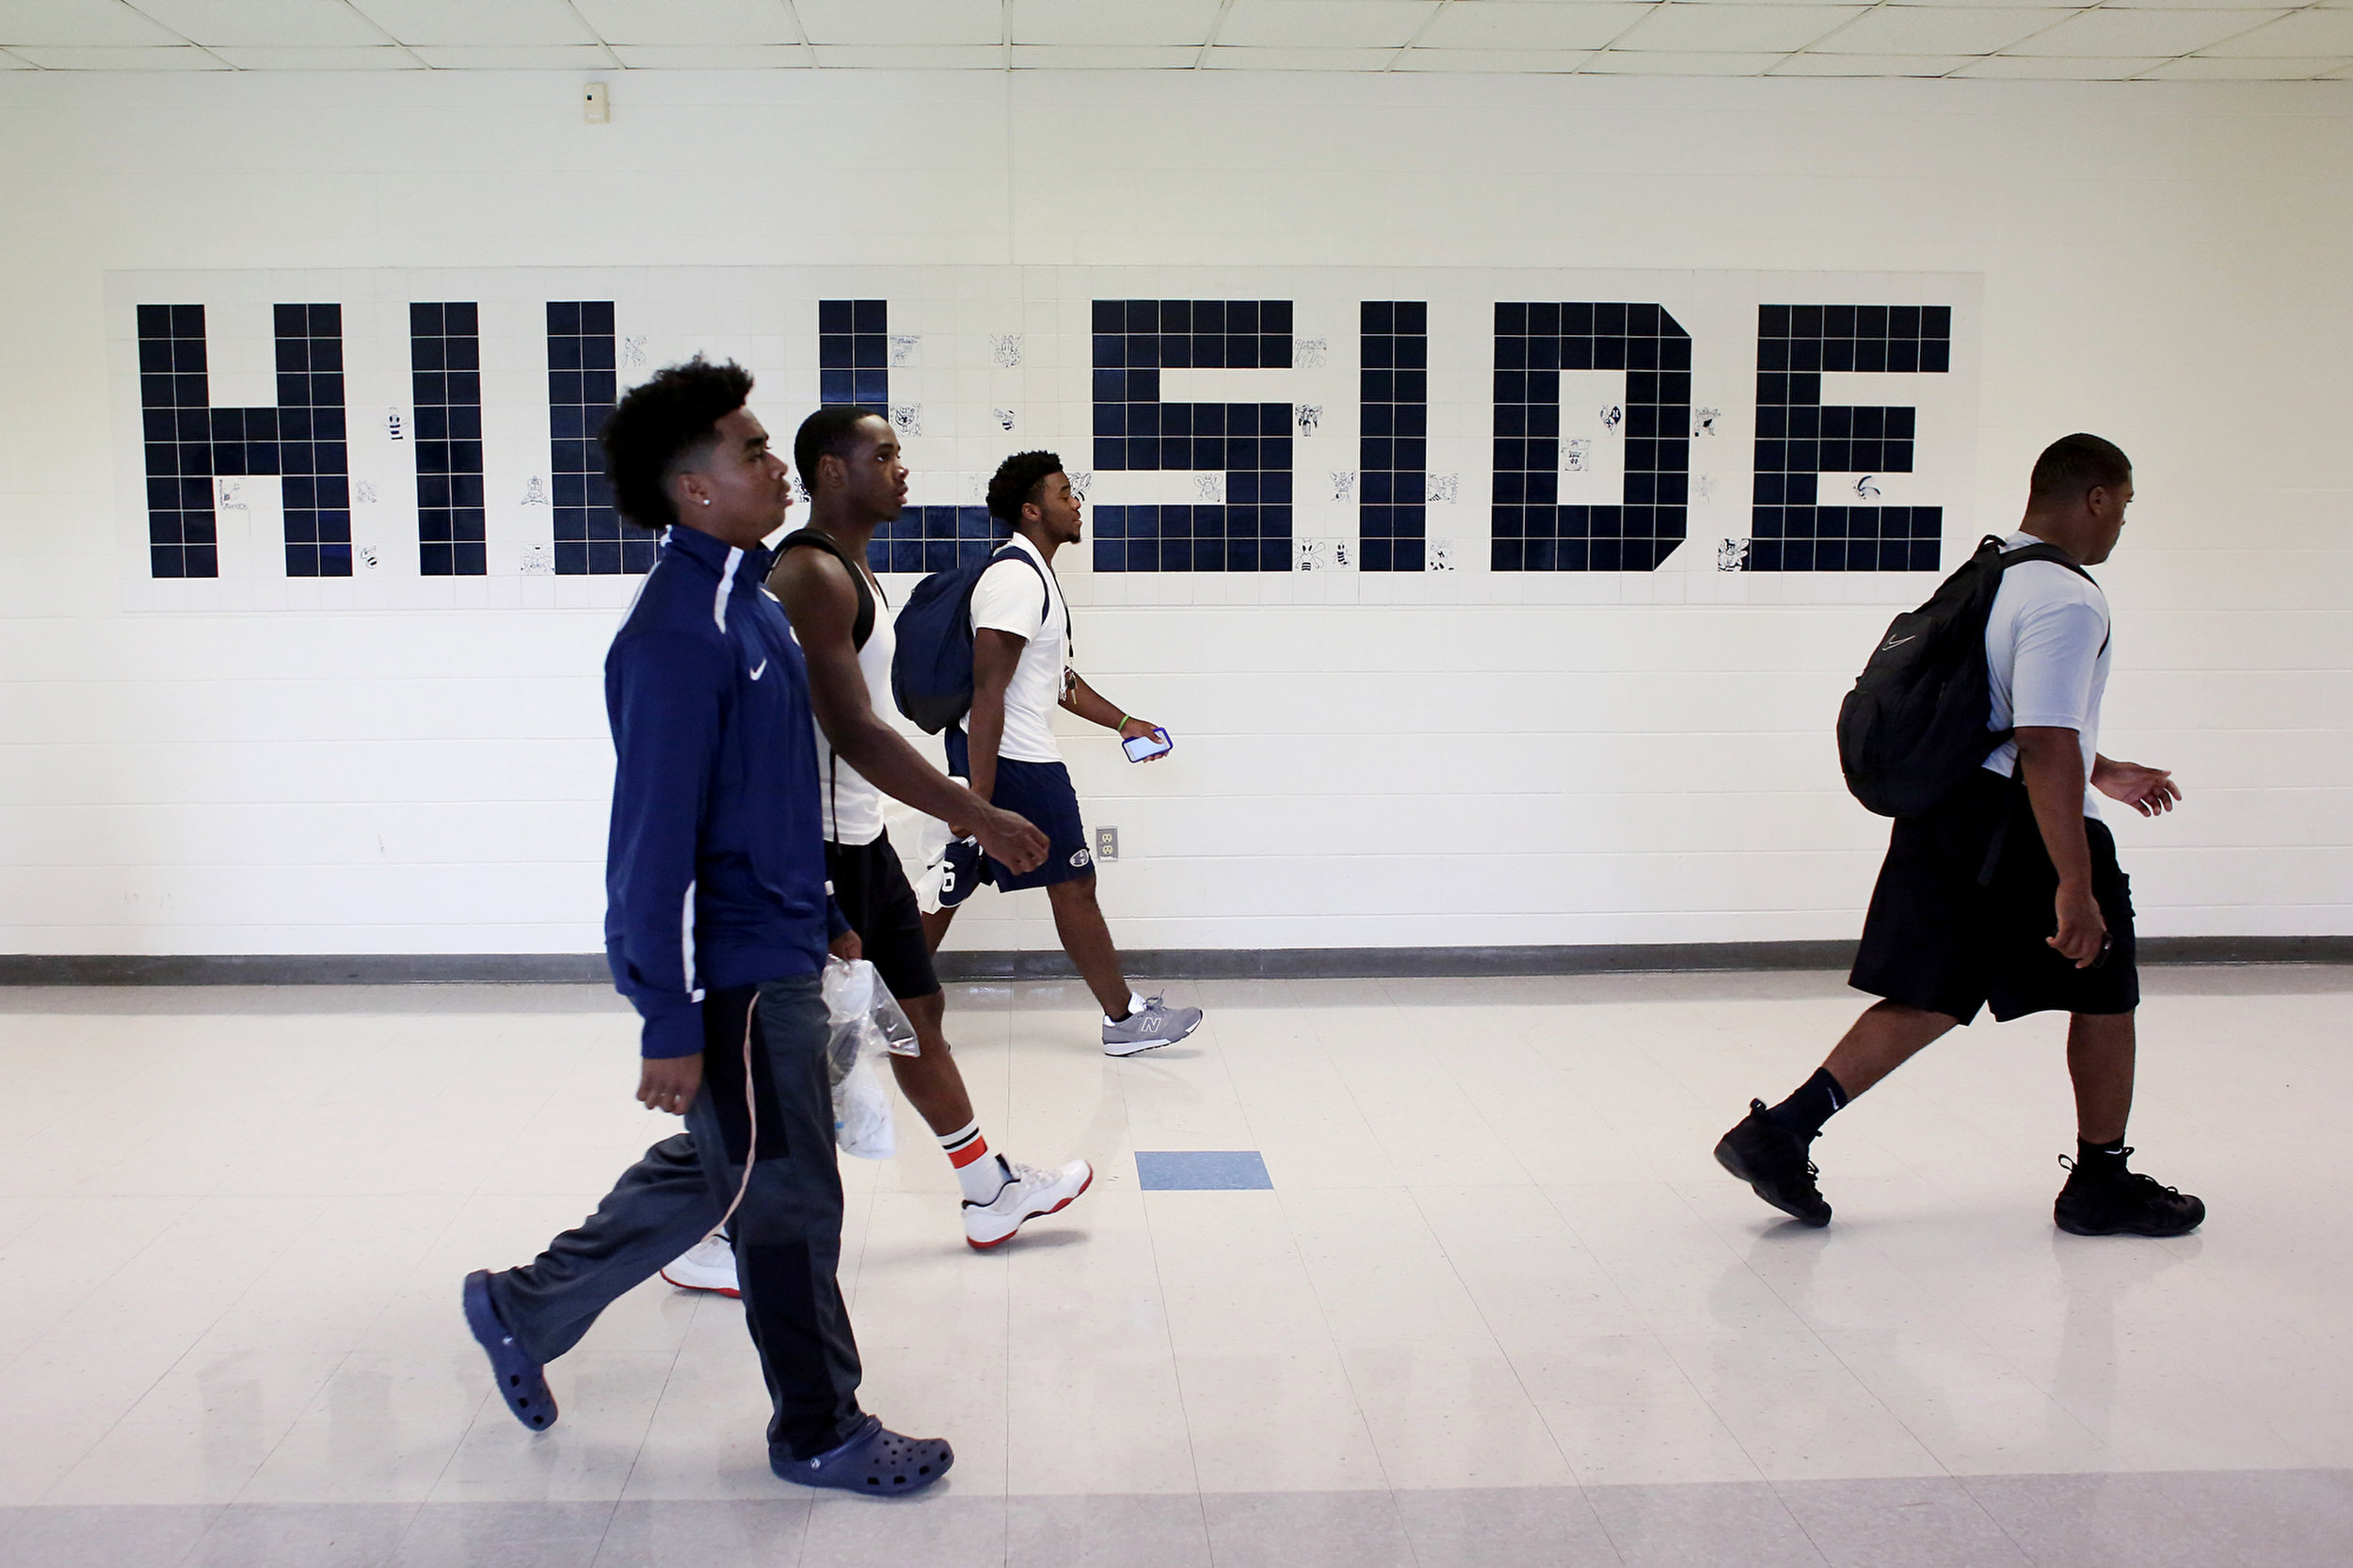 Hillside's Tory Truesdale, from left, Tavis Rhodes, Deion Williams, and Aaron McCullough walk down the hallway of their school, Sept. 15, 2016, prior to watching the the junior varsity football team play.